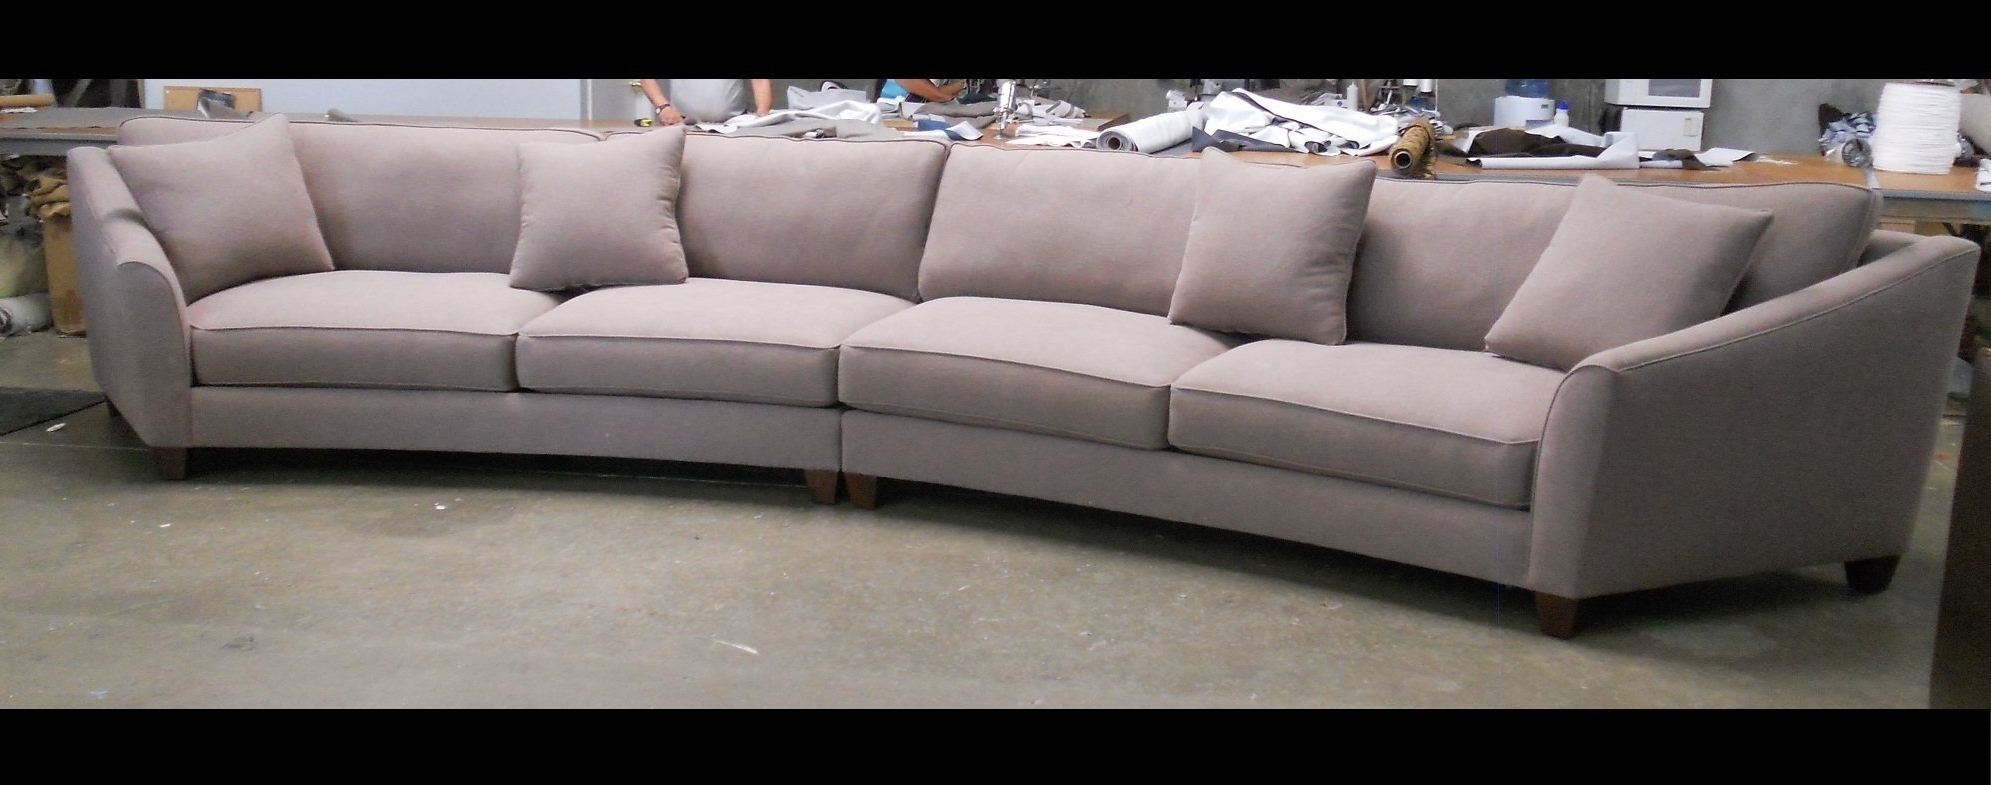 Best And Newest Nz Sectional Sofas Pertaining To Furniture : 5060 Recliner Sectional Sofa Costco $699 Corner Couch (View 7 of 15)